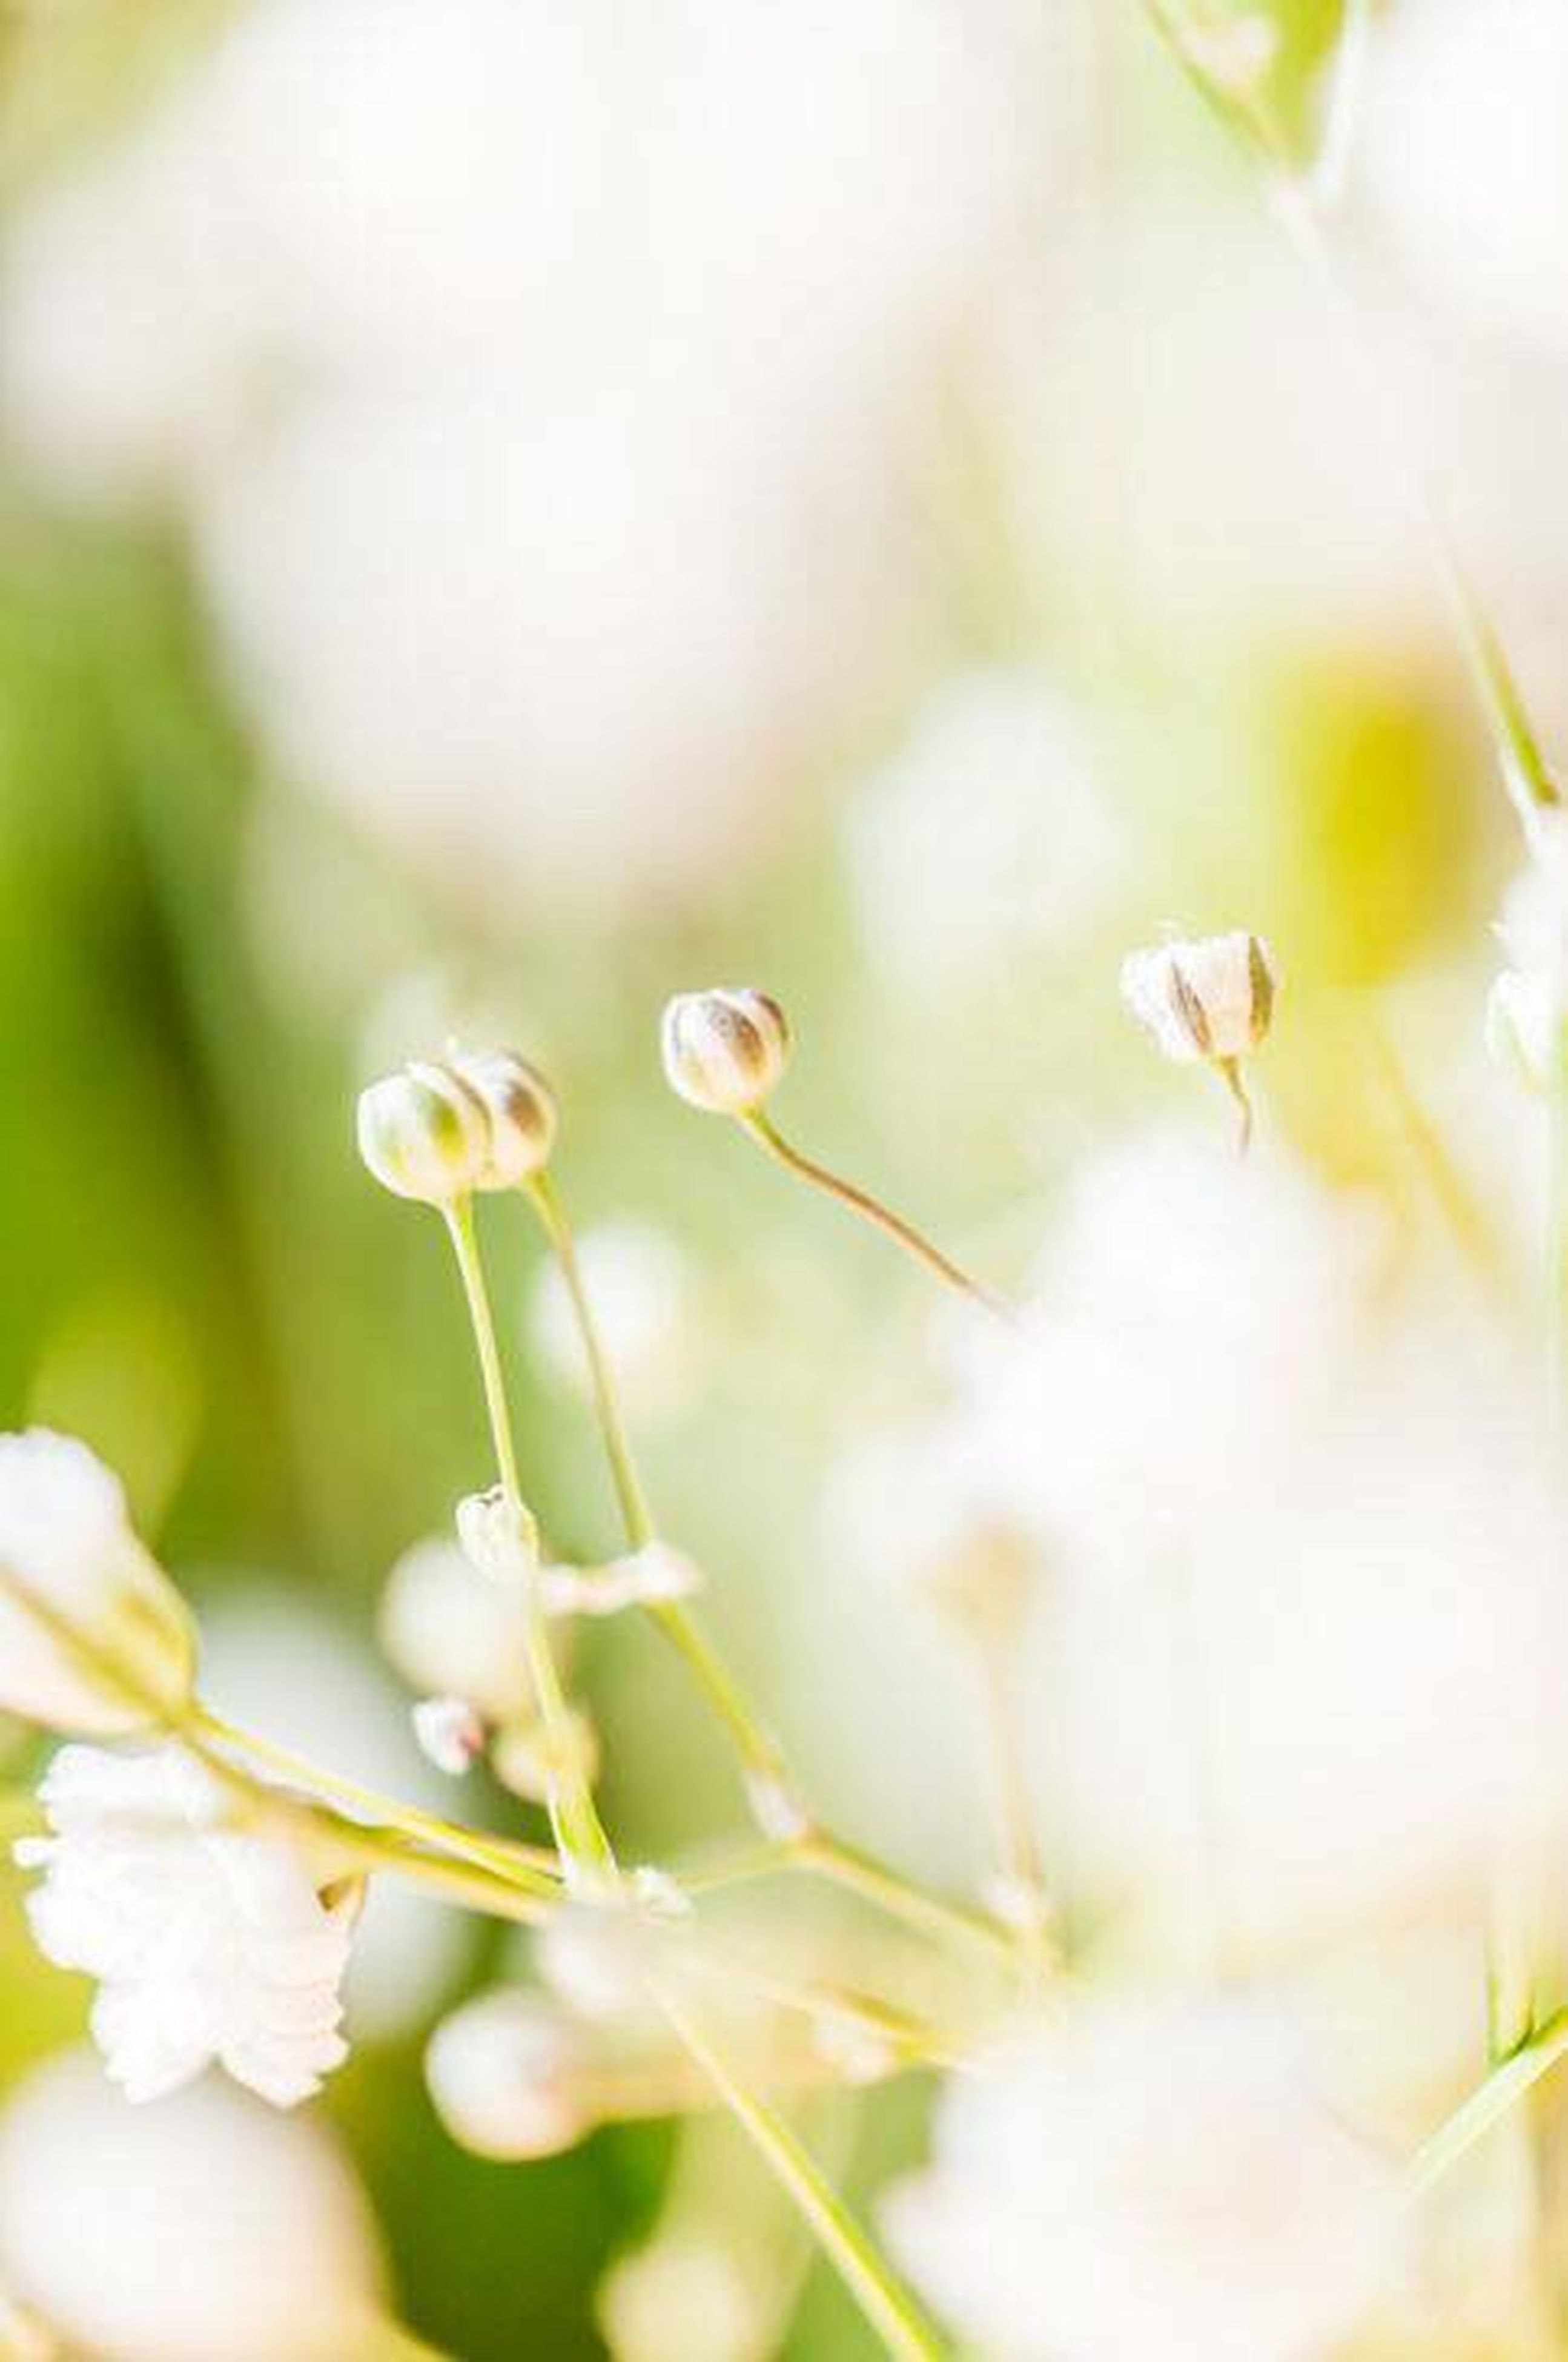 flower, growth, freshness, fragility, focus on foreground, close-up, beauty in nature, petal, nature, selective focus, plant, flower head, white color, stem, blooming, bud, blossom, in bloom, botany, springtime